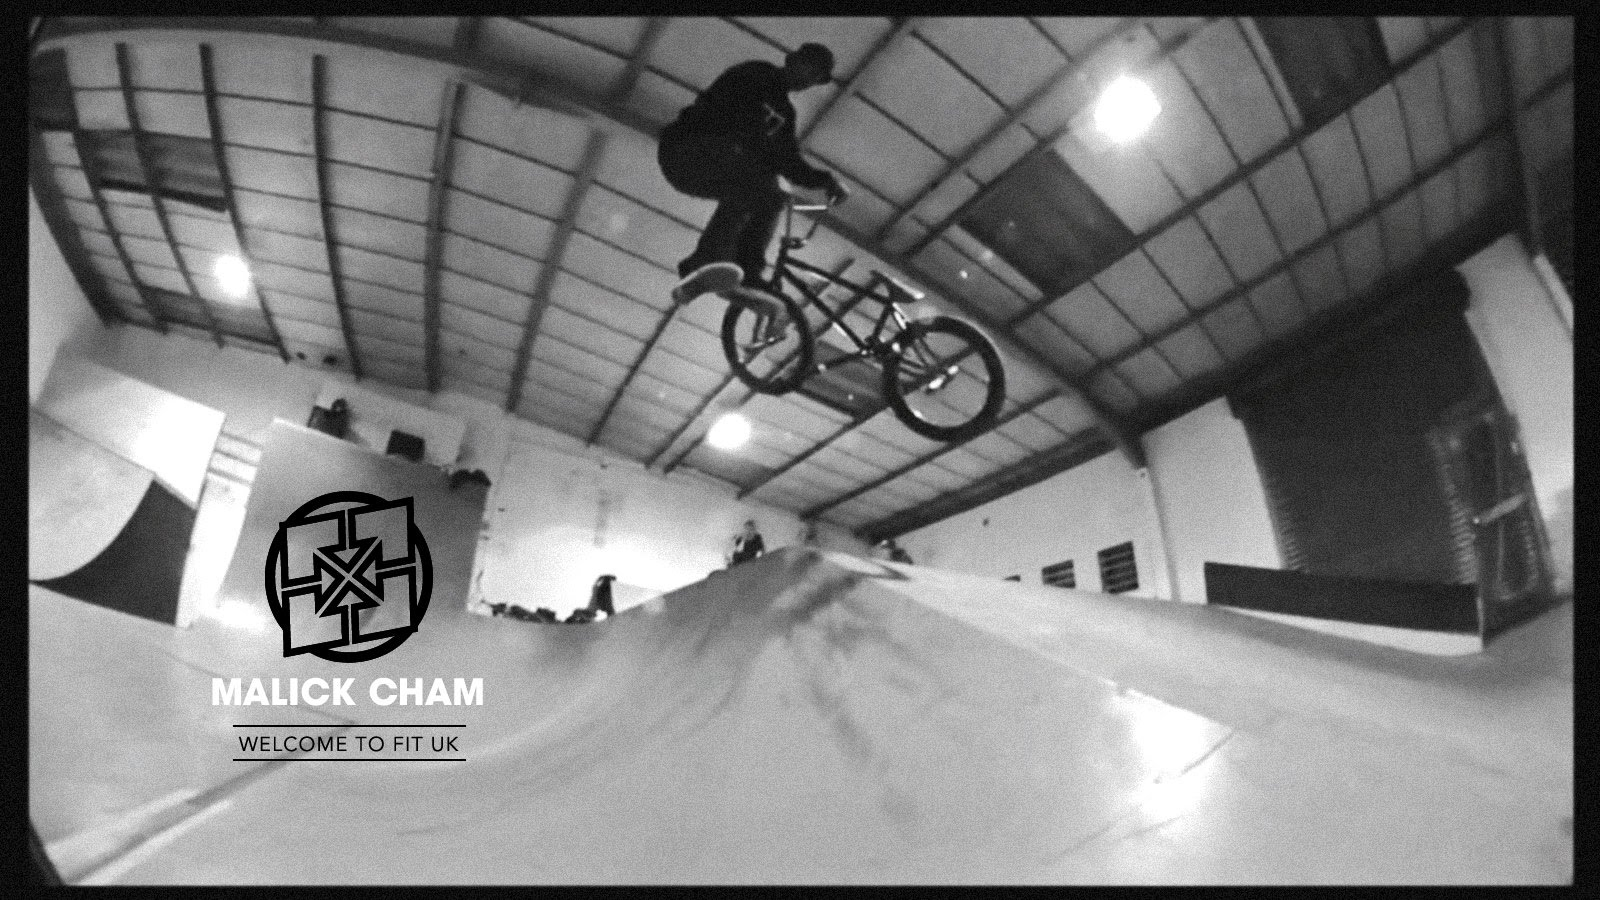 Malick Cham: Welcome To The FIT UK Team